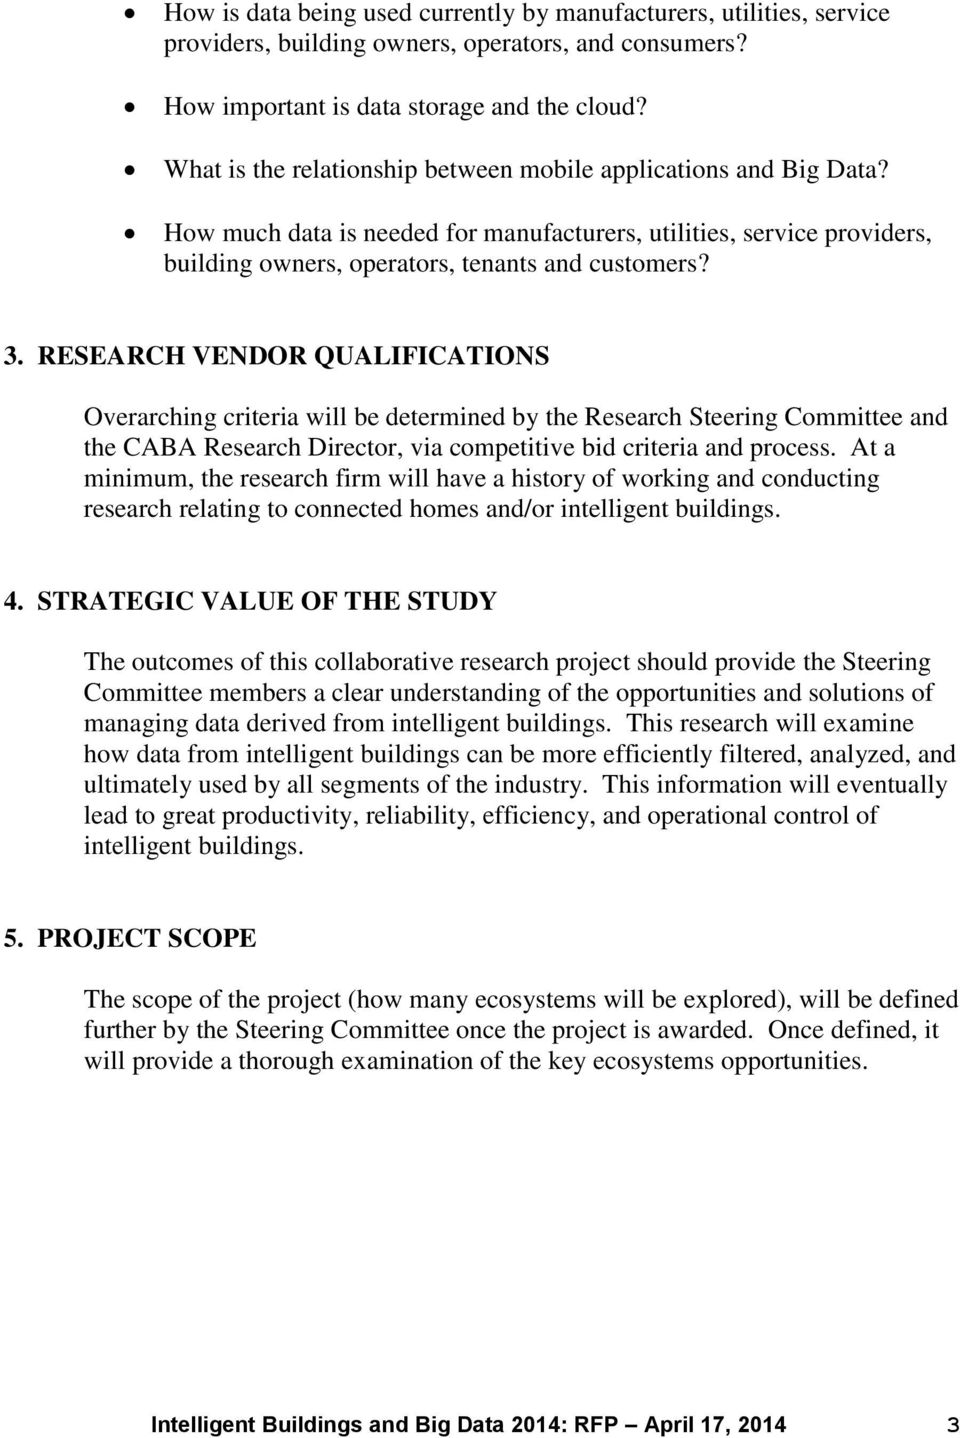 RESEARCH VENDOR QUALIFICATIONS Overarching criteria will be determined by the Research Steering Committee and the CABA Research Director, via competitive bid criteria and process.